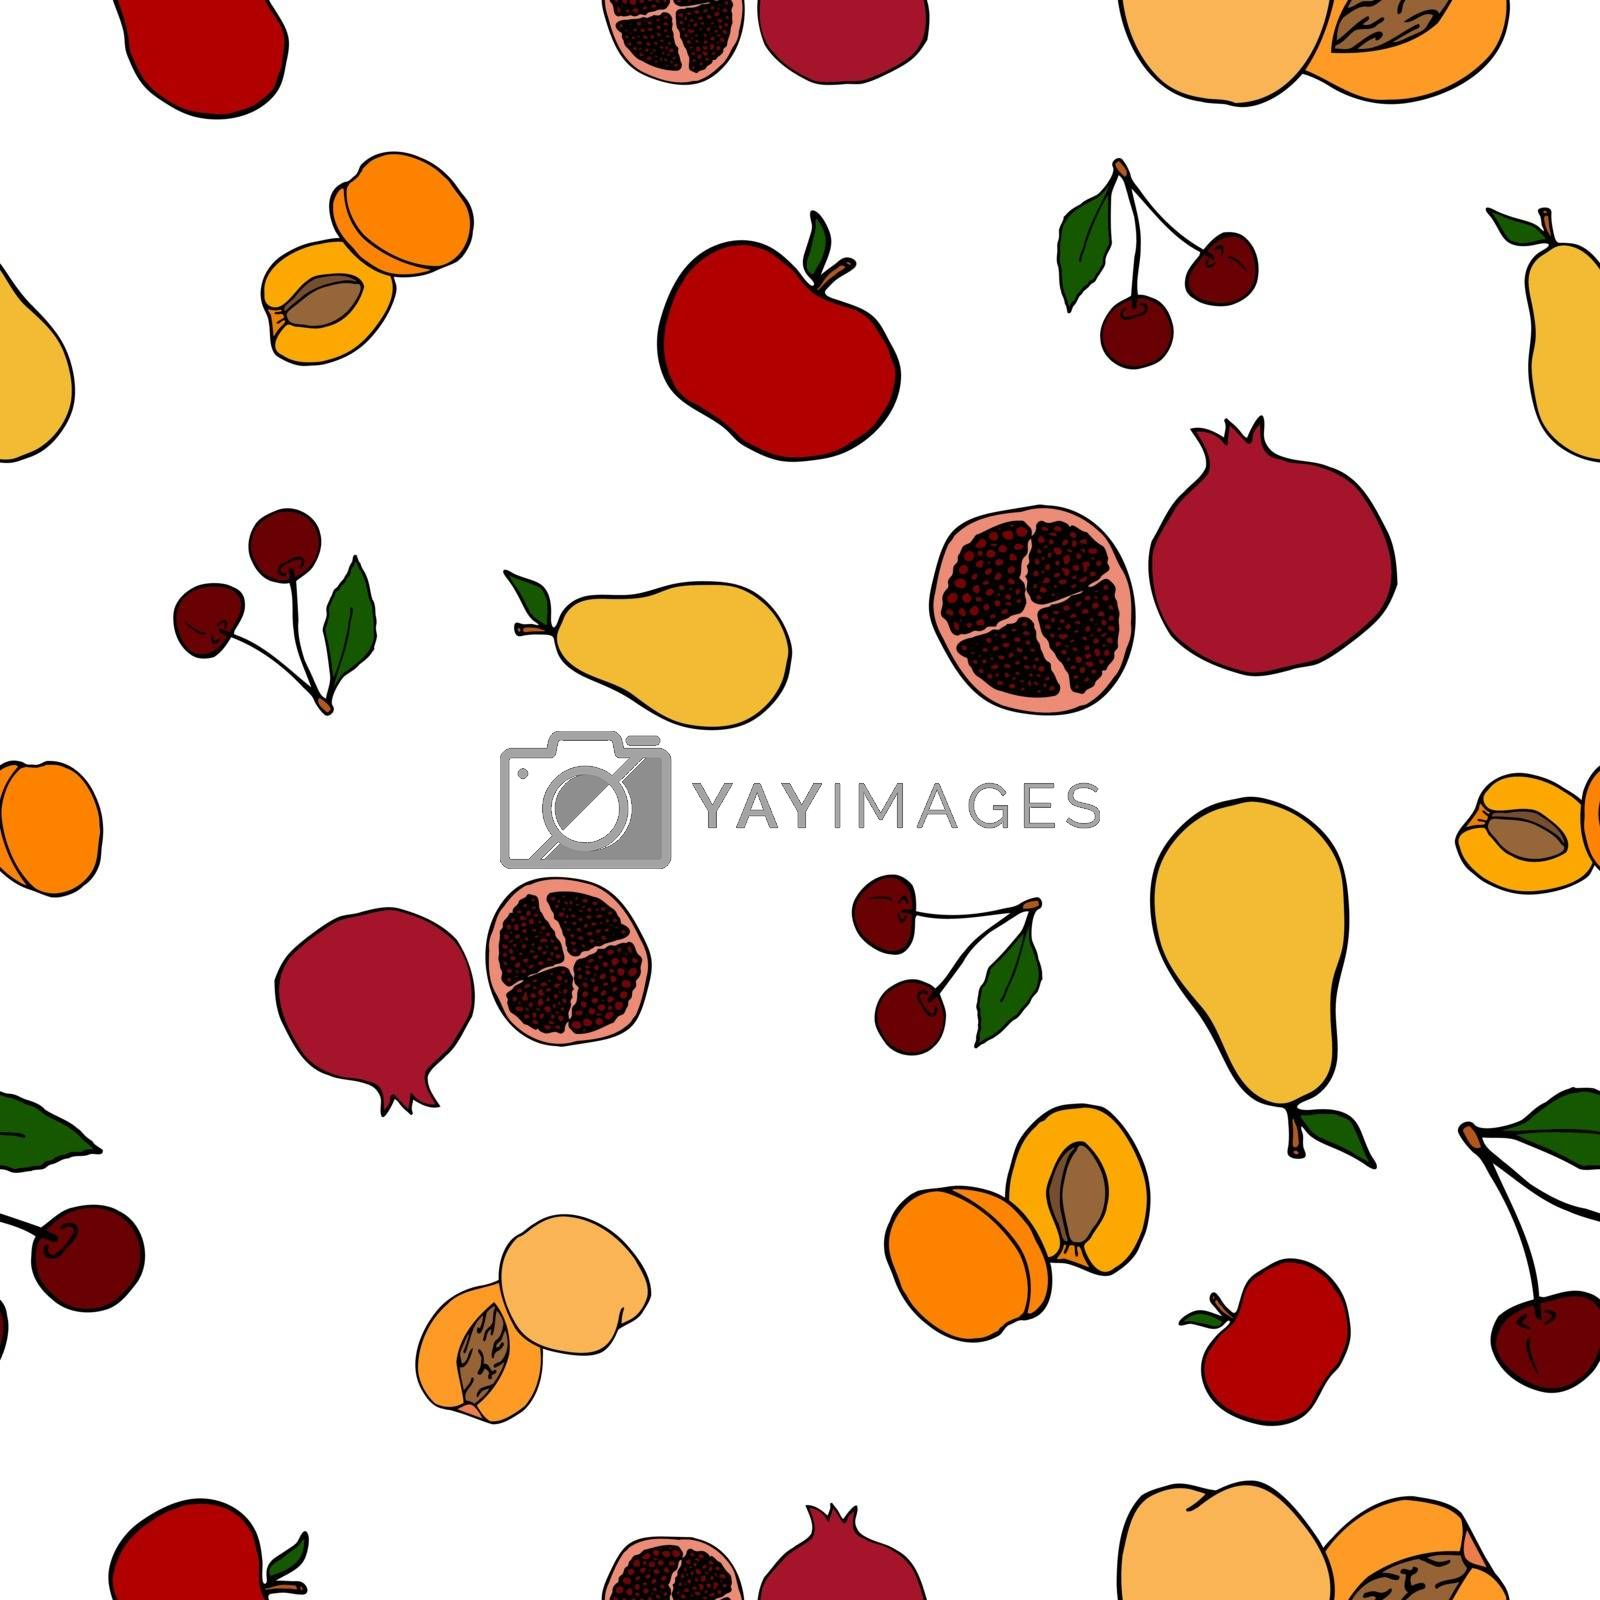 Seamless fruit pattern. Vector illustration including apples, pears, apricots, peaches, pomegranates and cherries.